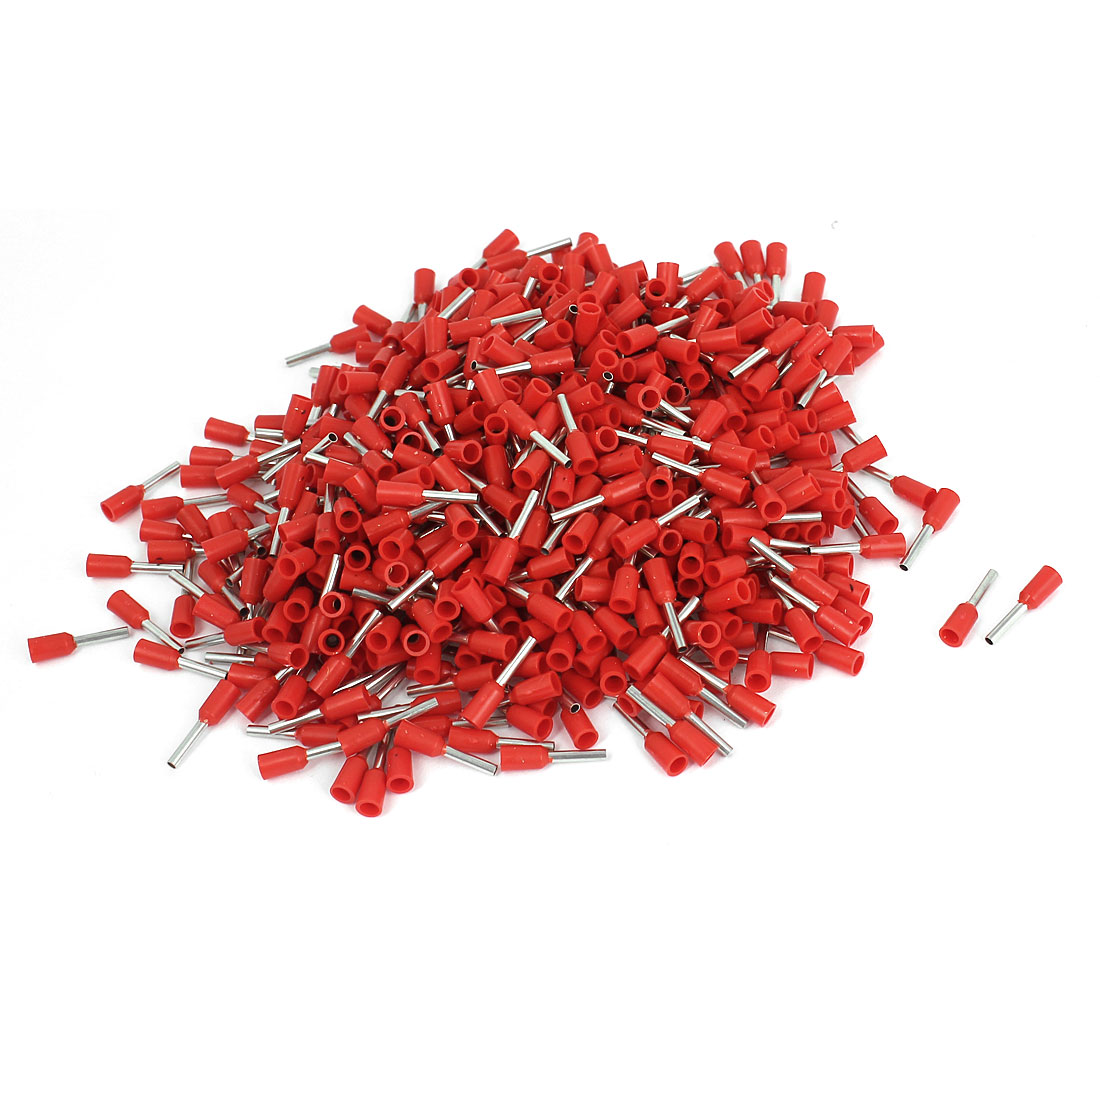 640 Pcs E7508 20AWG Tube Type Insulated Cable End Terminal Red